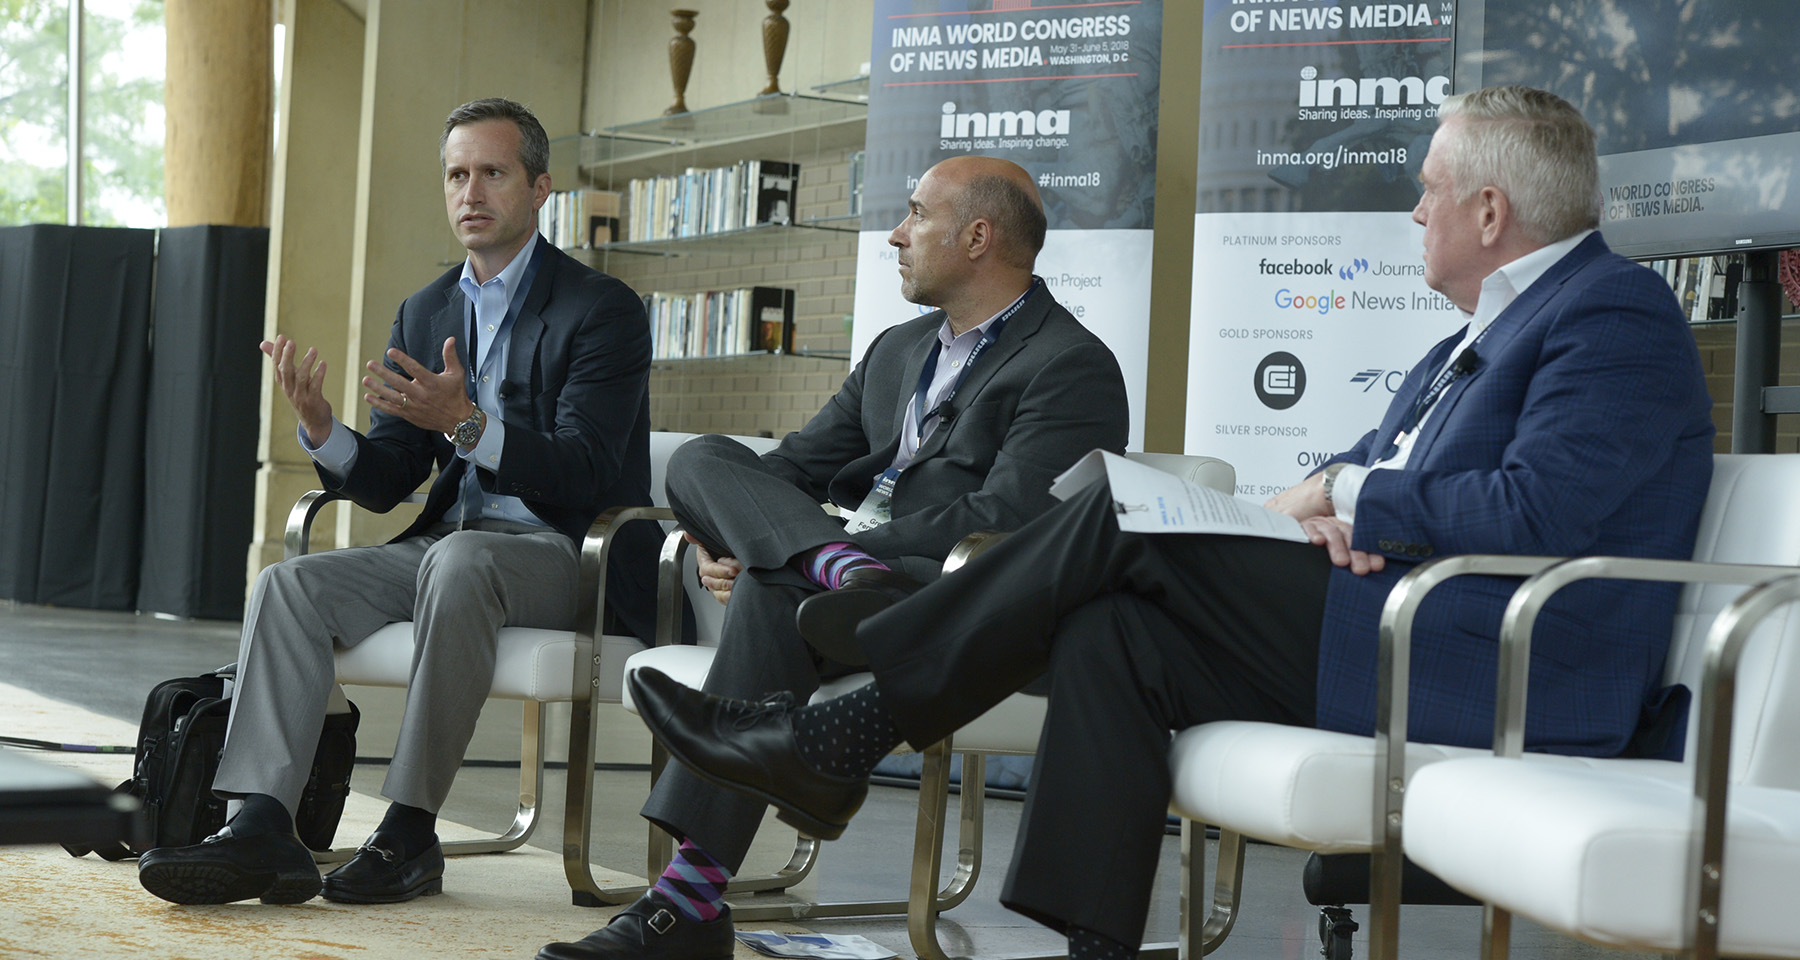 INMA: Newsmedia companies have tools to transcend shrinking budgets